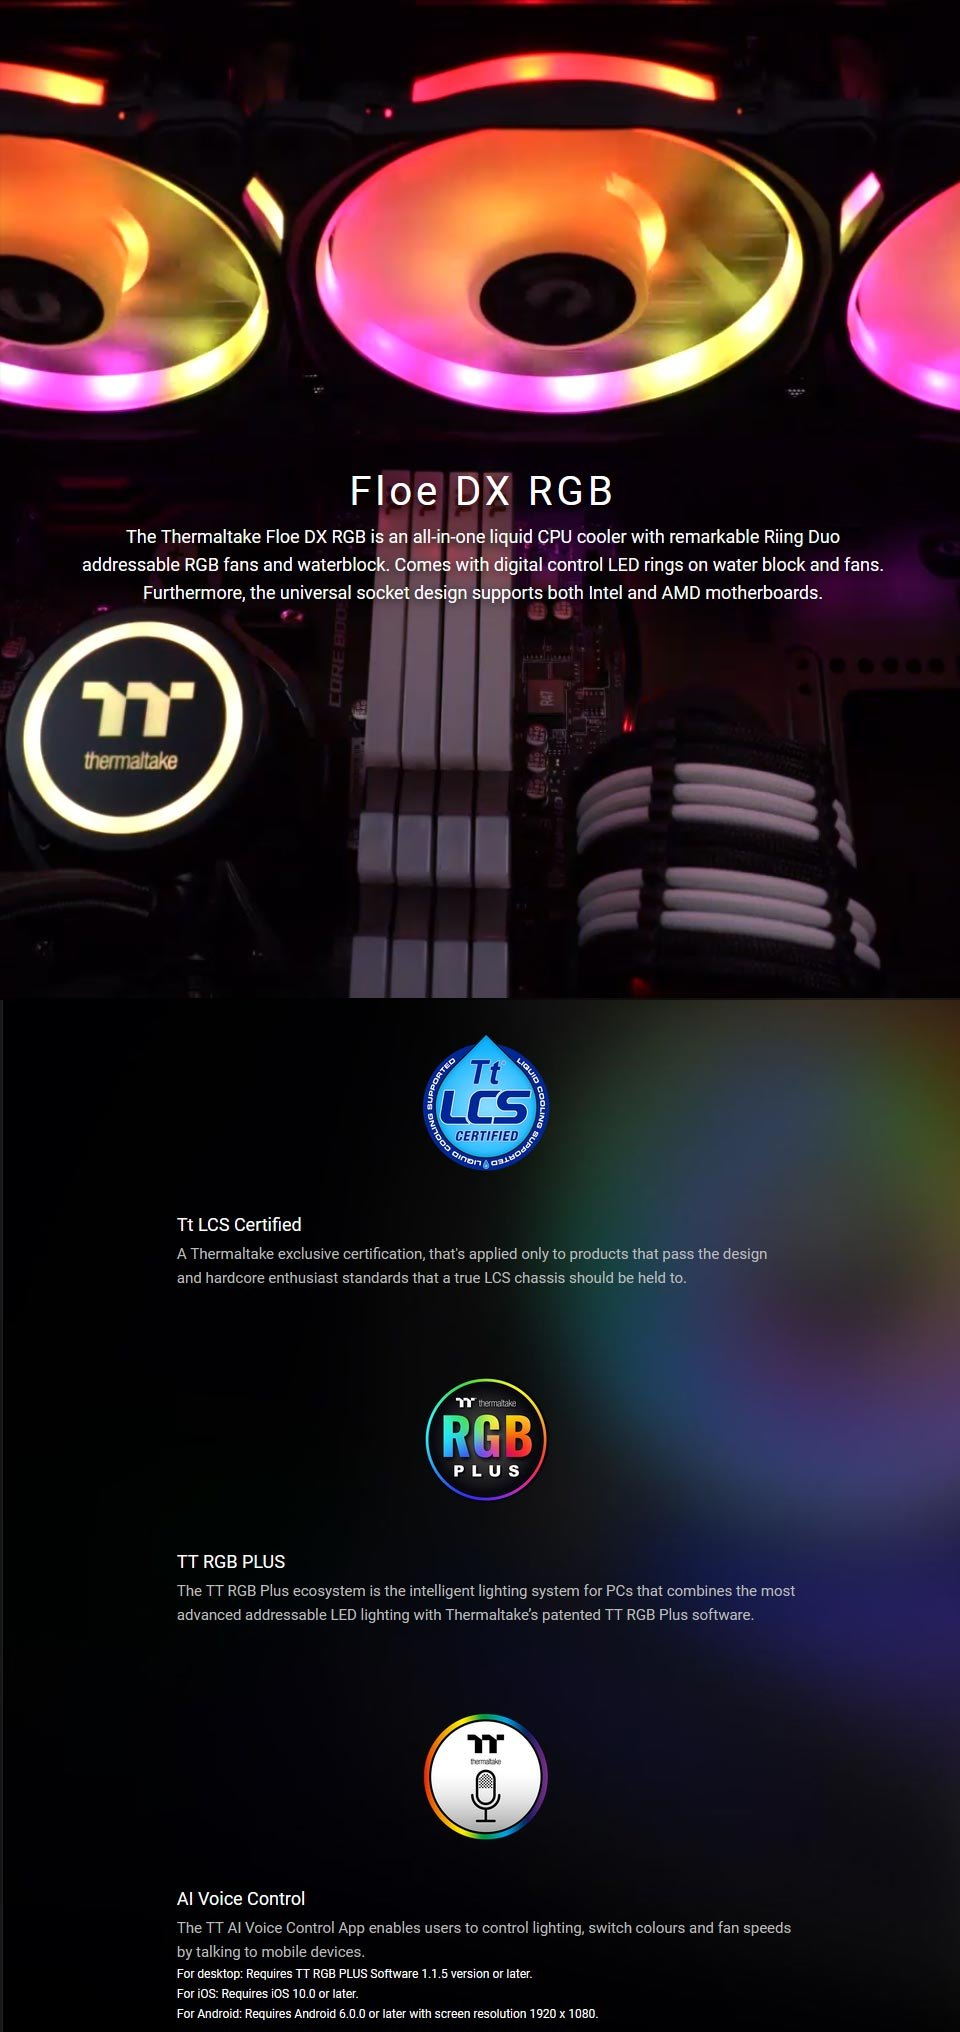 Thermaltake Floe DX RGB 360mm AIO Liquid CPU Cooler features